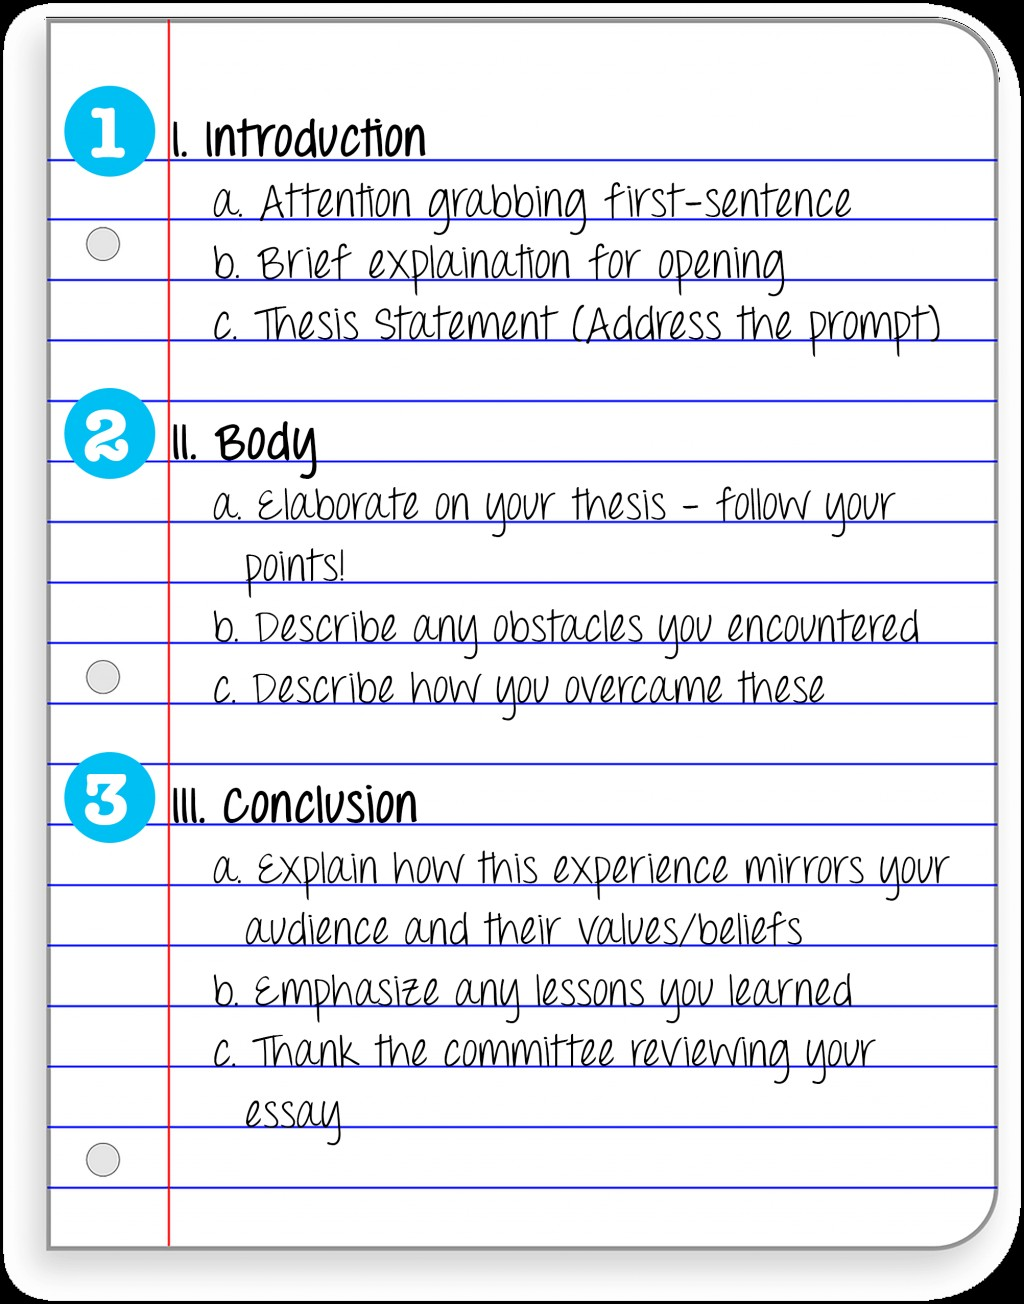 001 Essay Example Scholessay Formidable Steps Writing Process To An About Yourself Large